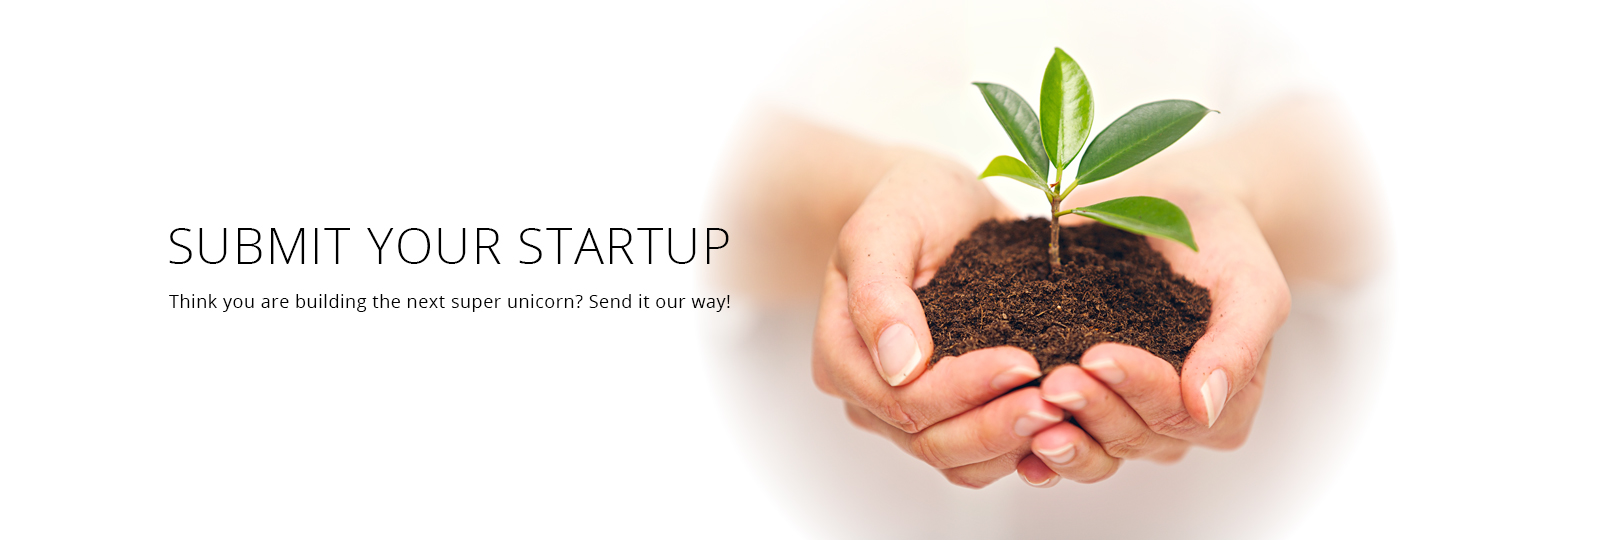 submit-your-startup